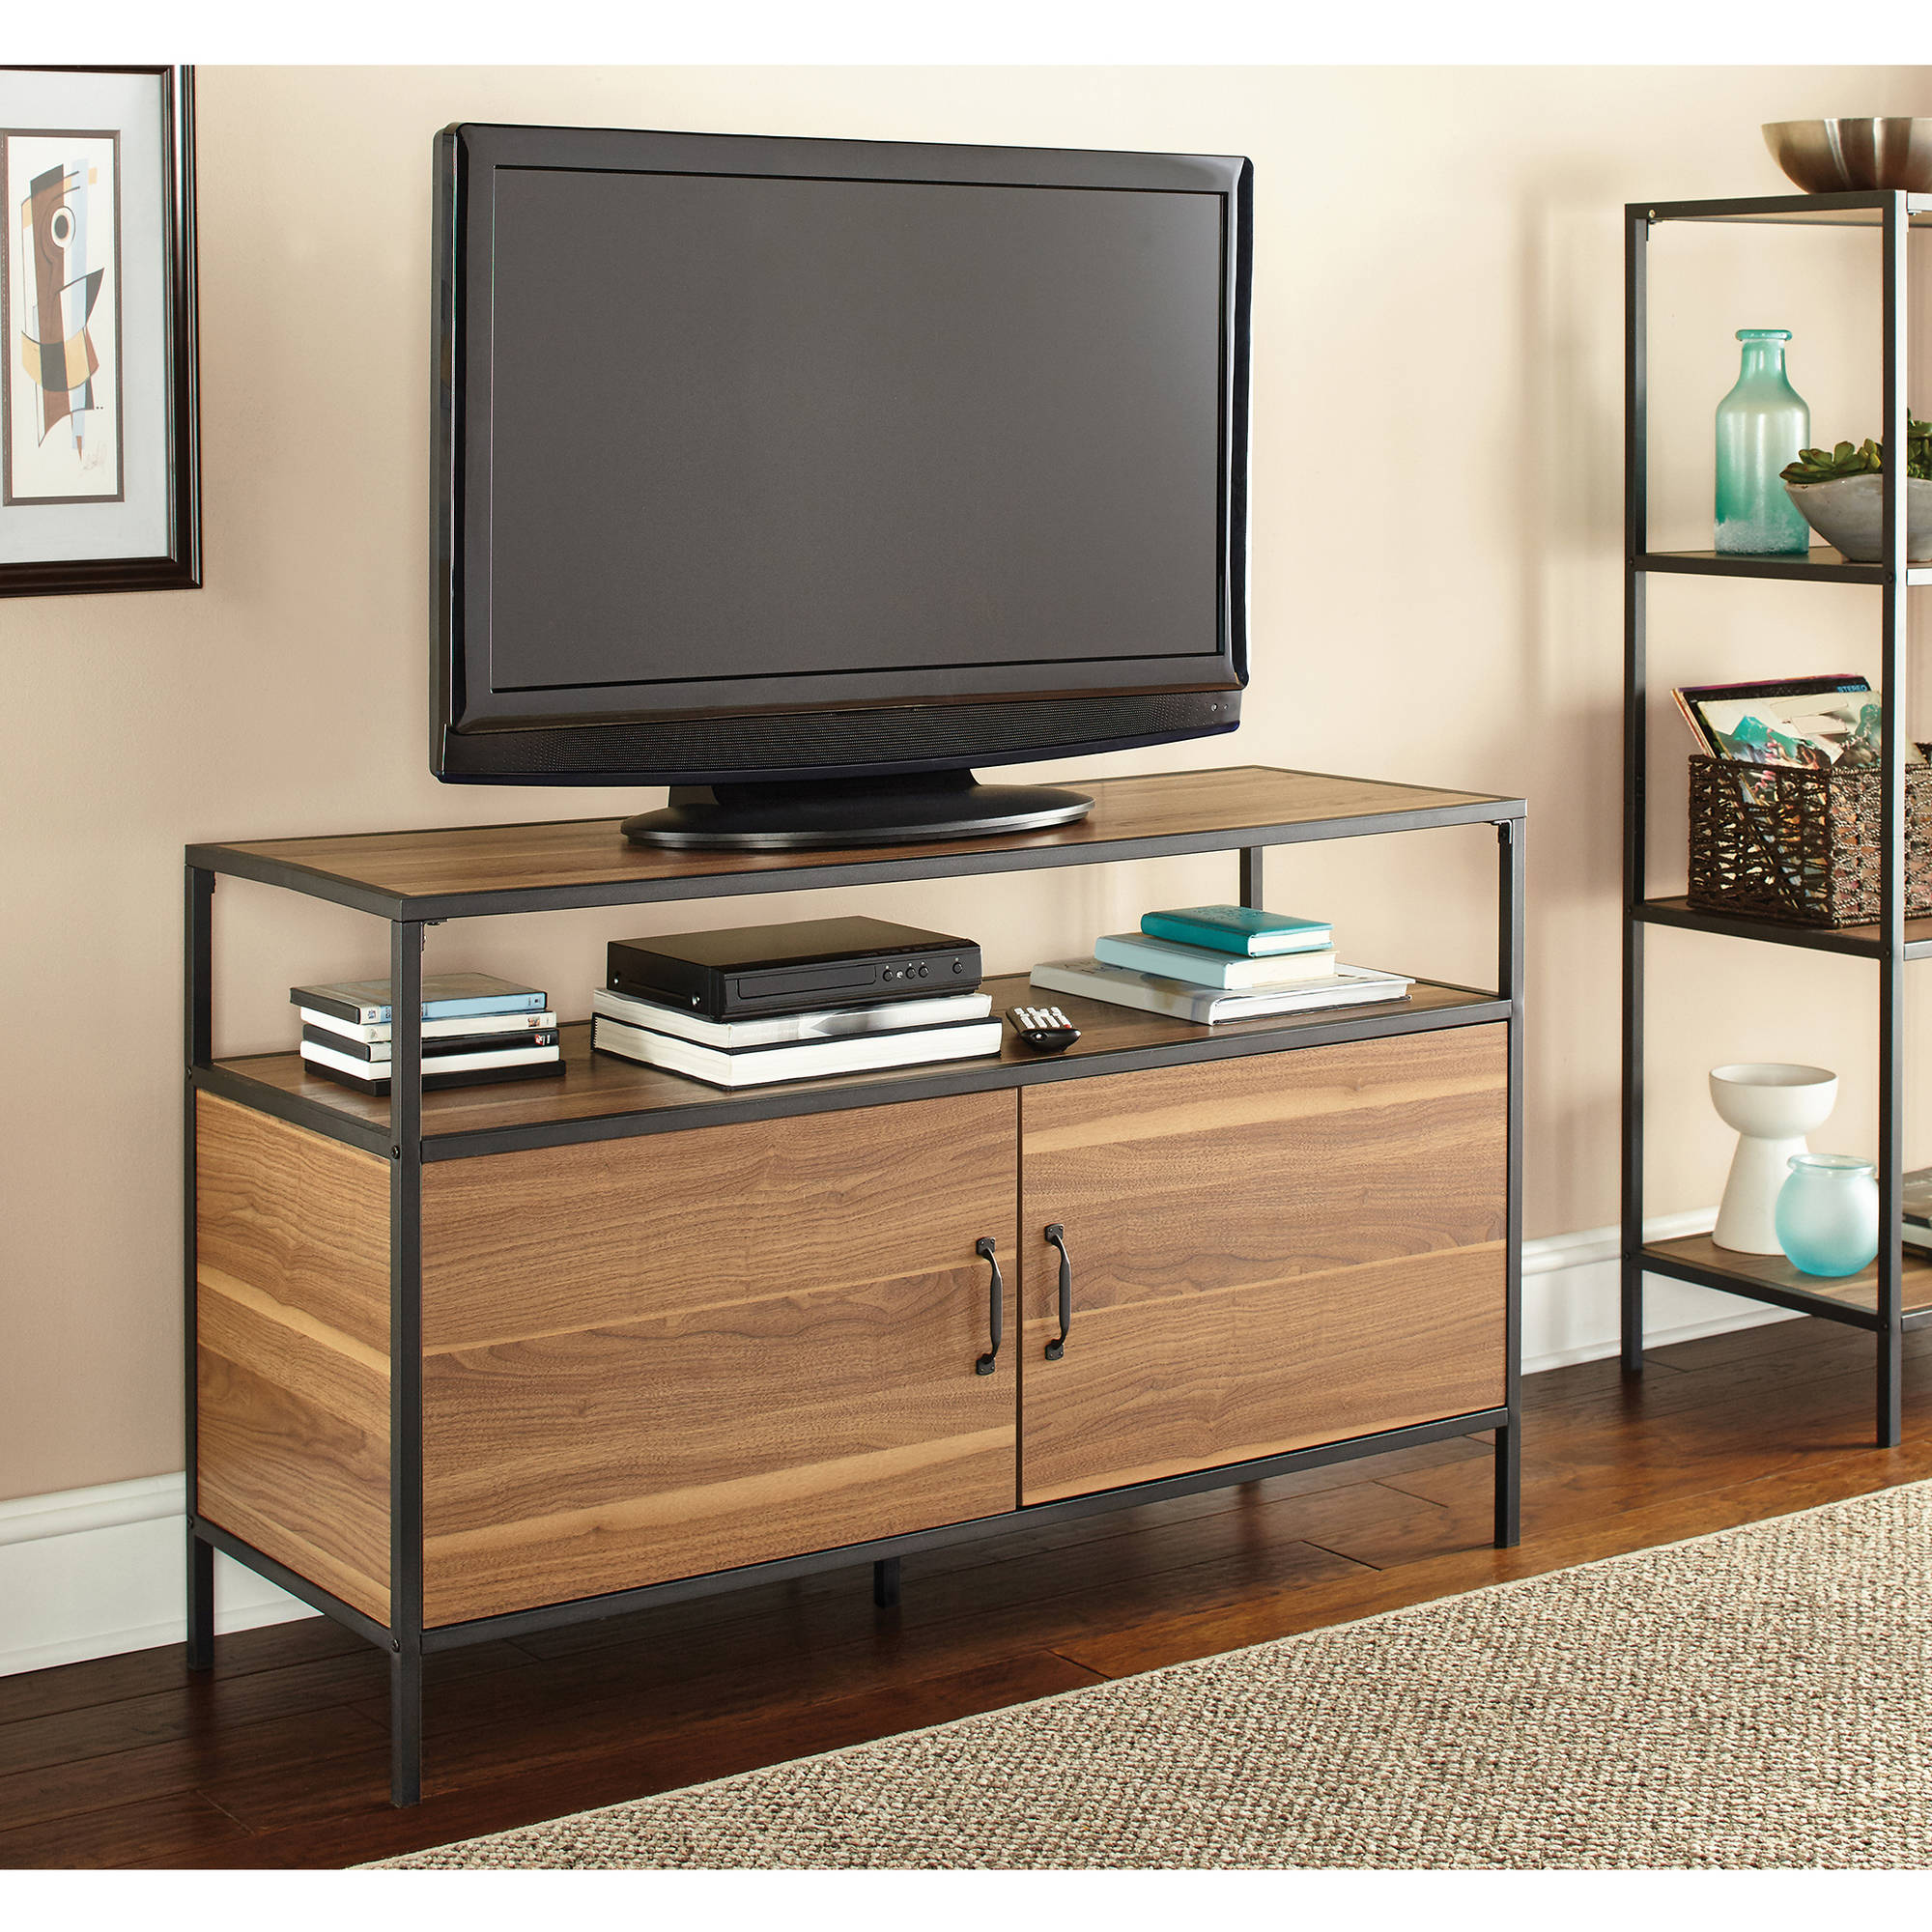 Mainstays Metro TV Stand for TVs up to 50\